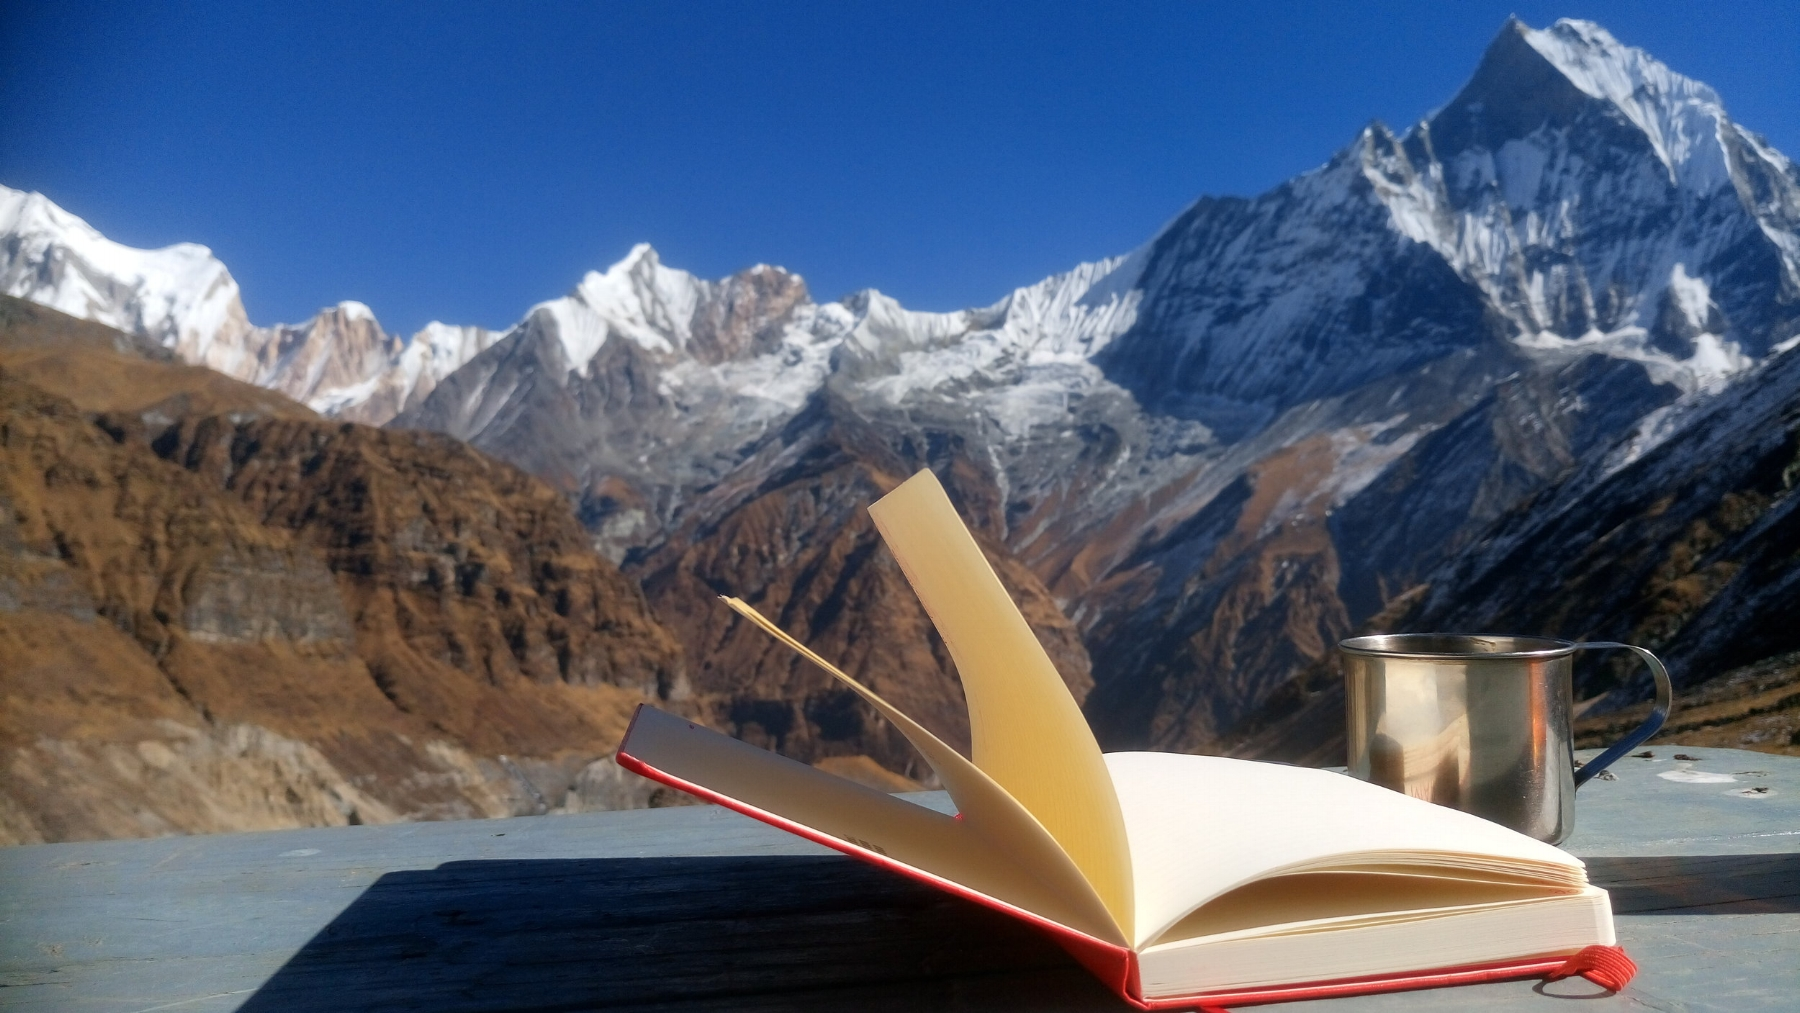 View from Annapurna Base Camp, Nepal